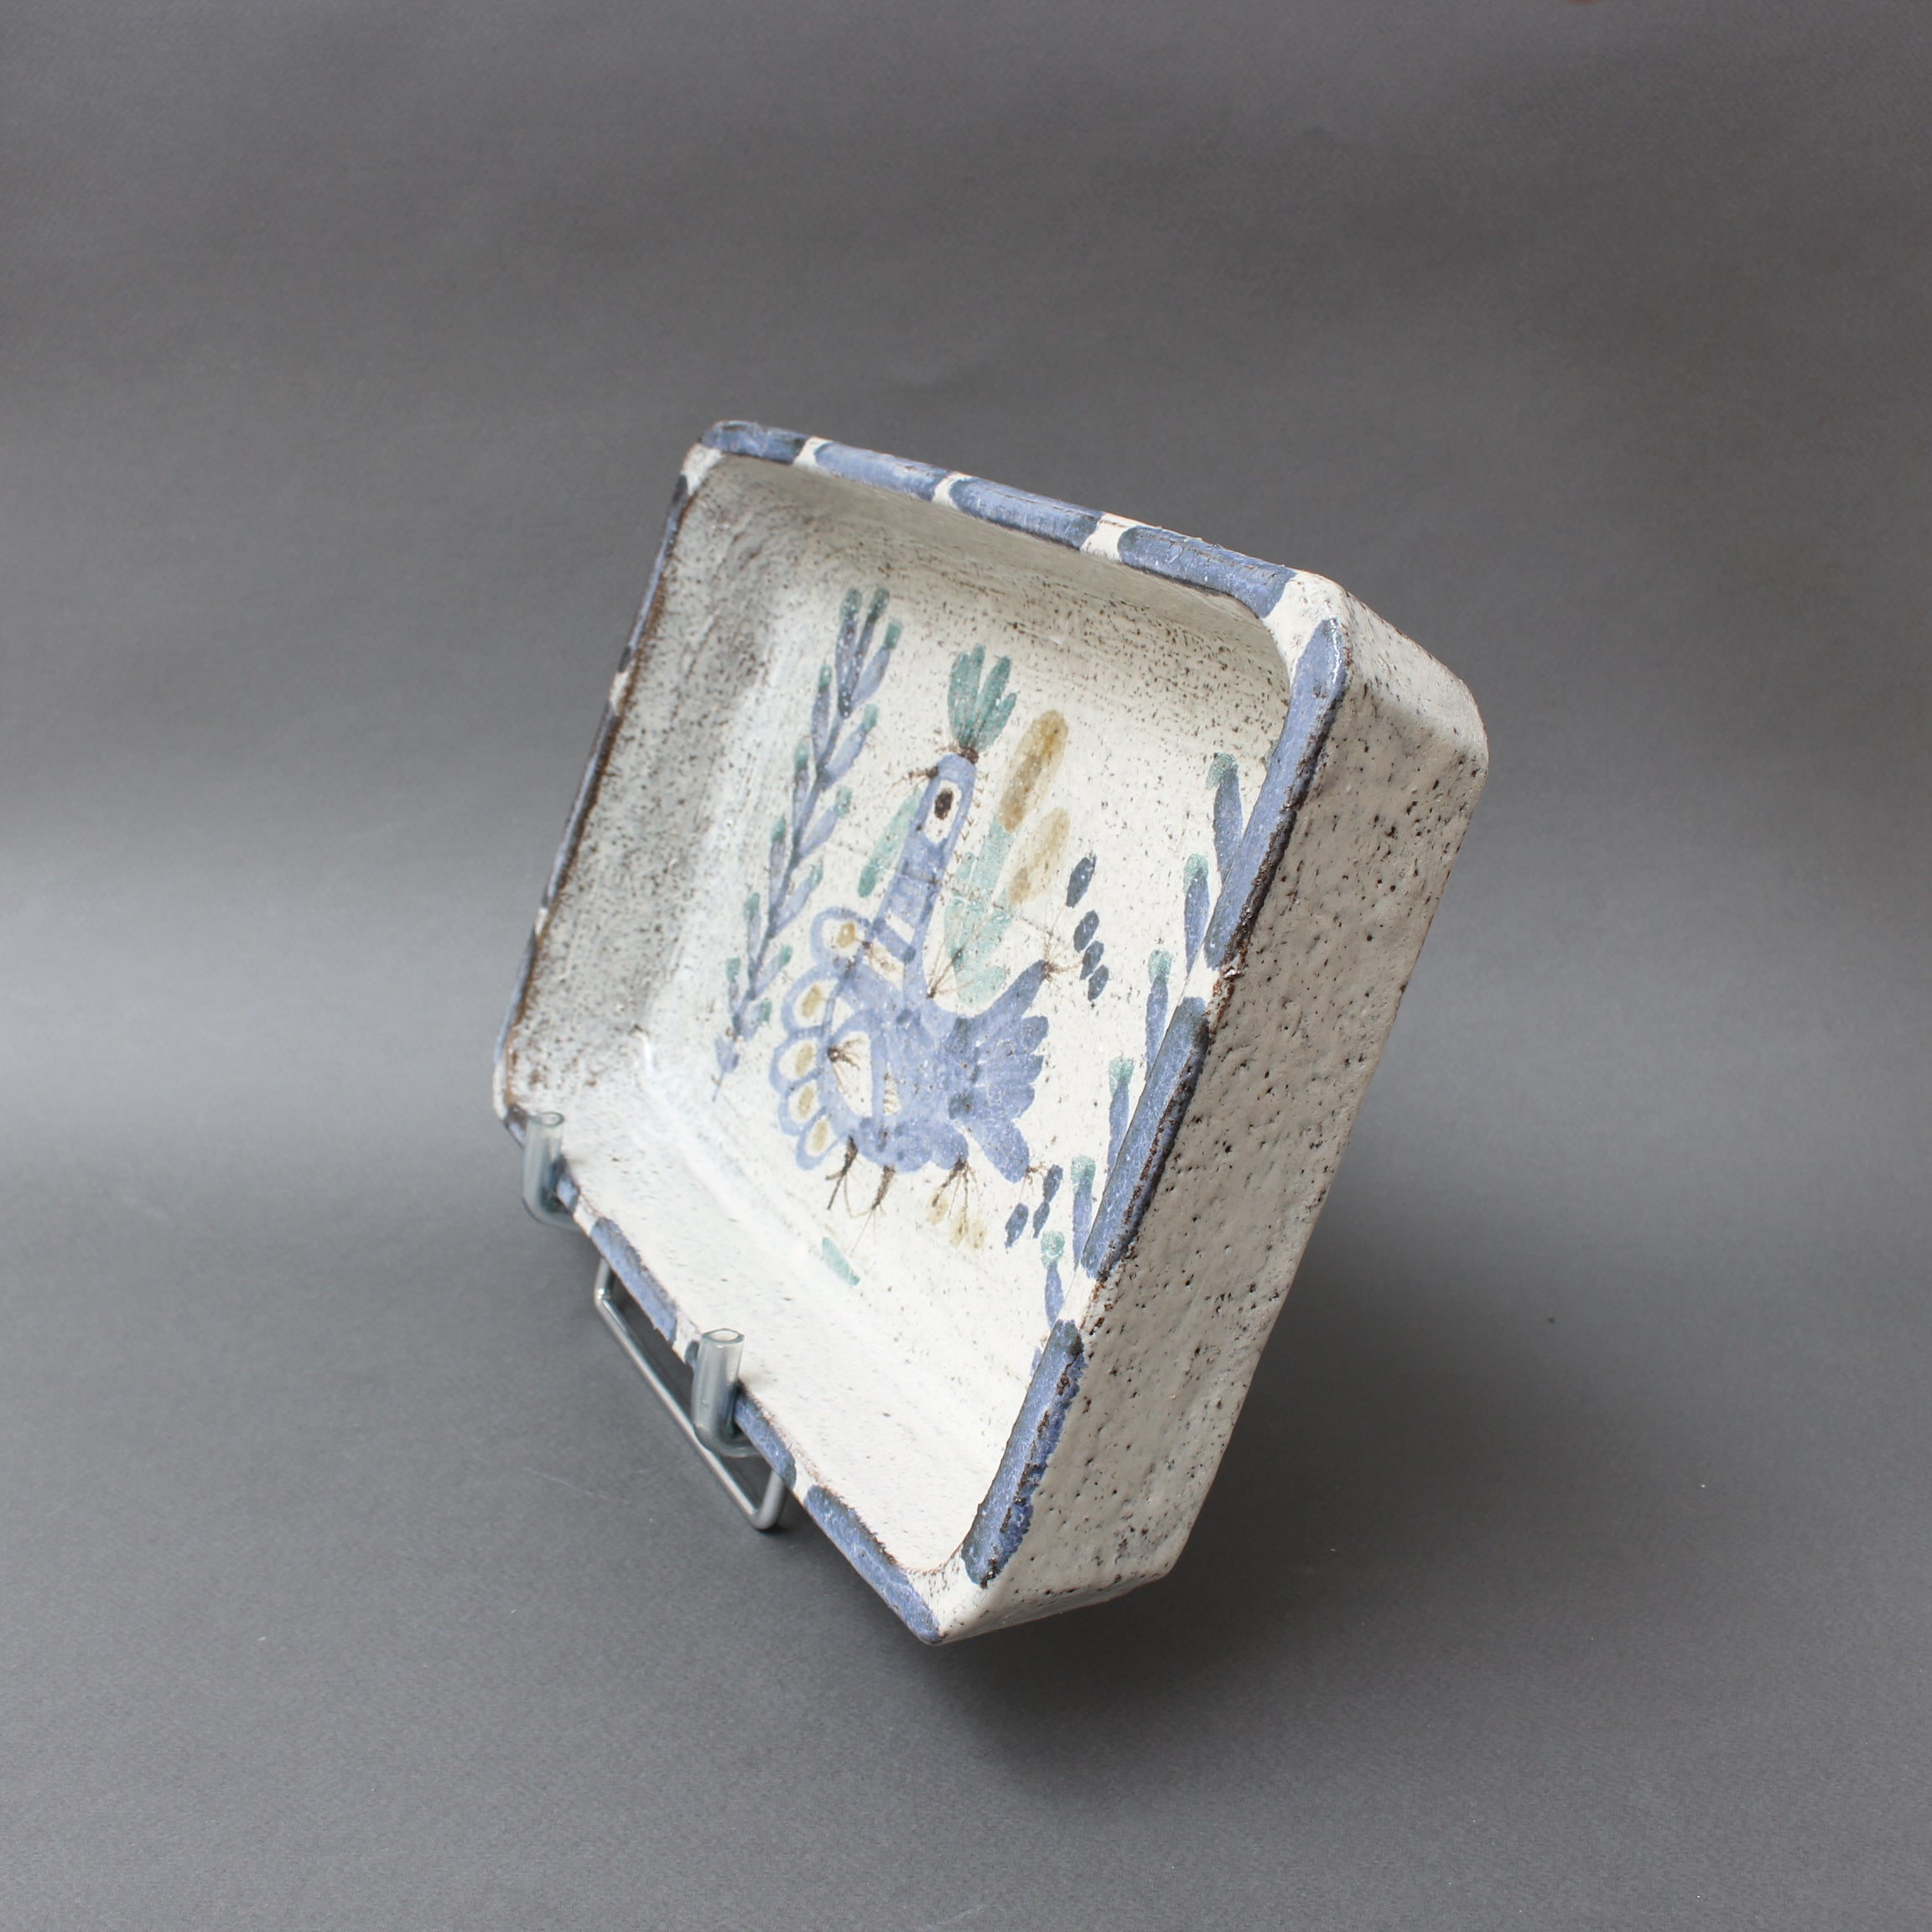 Decorative Ceramic Rectangular Dish by Gustave Reynaud, Le Mûrier (circa 1950s)